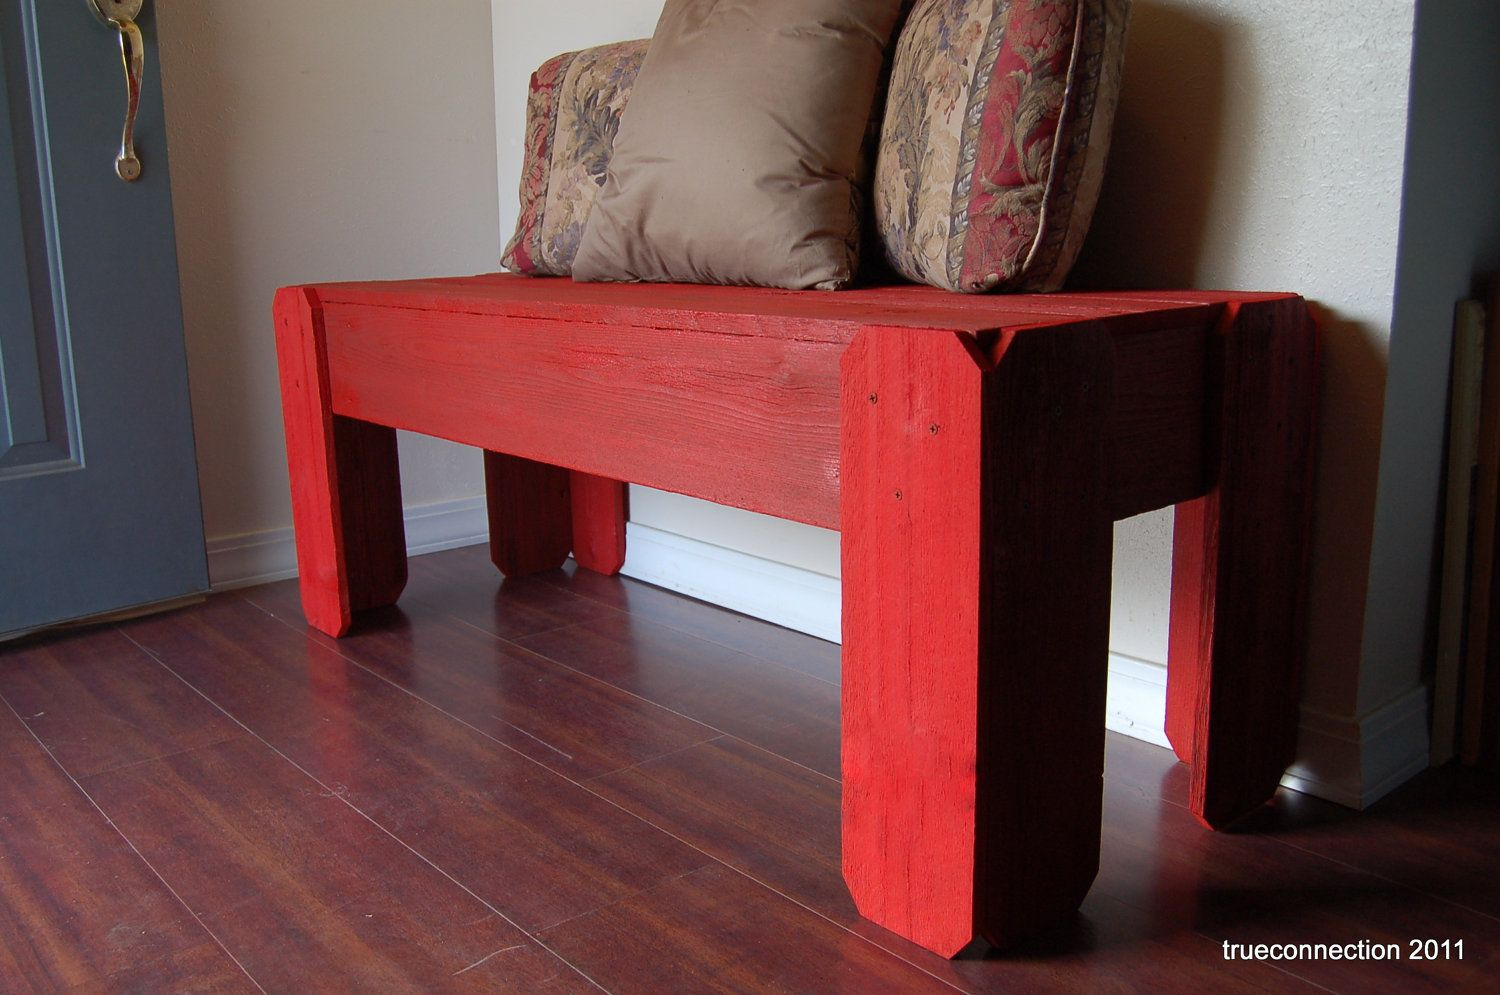 - Red Wood Bench. Wood Furniture. Rustic Furniture. Bright Red Bench